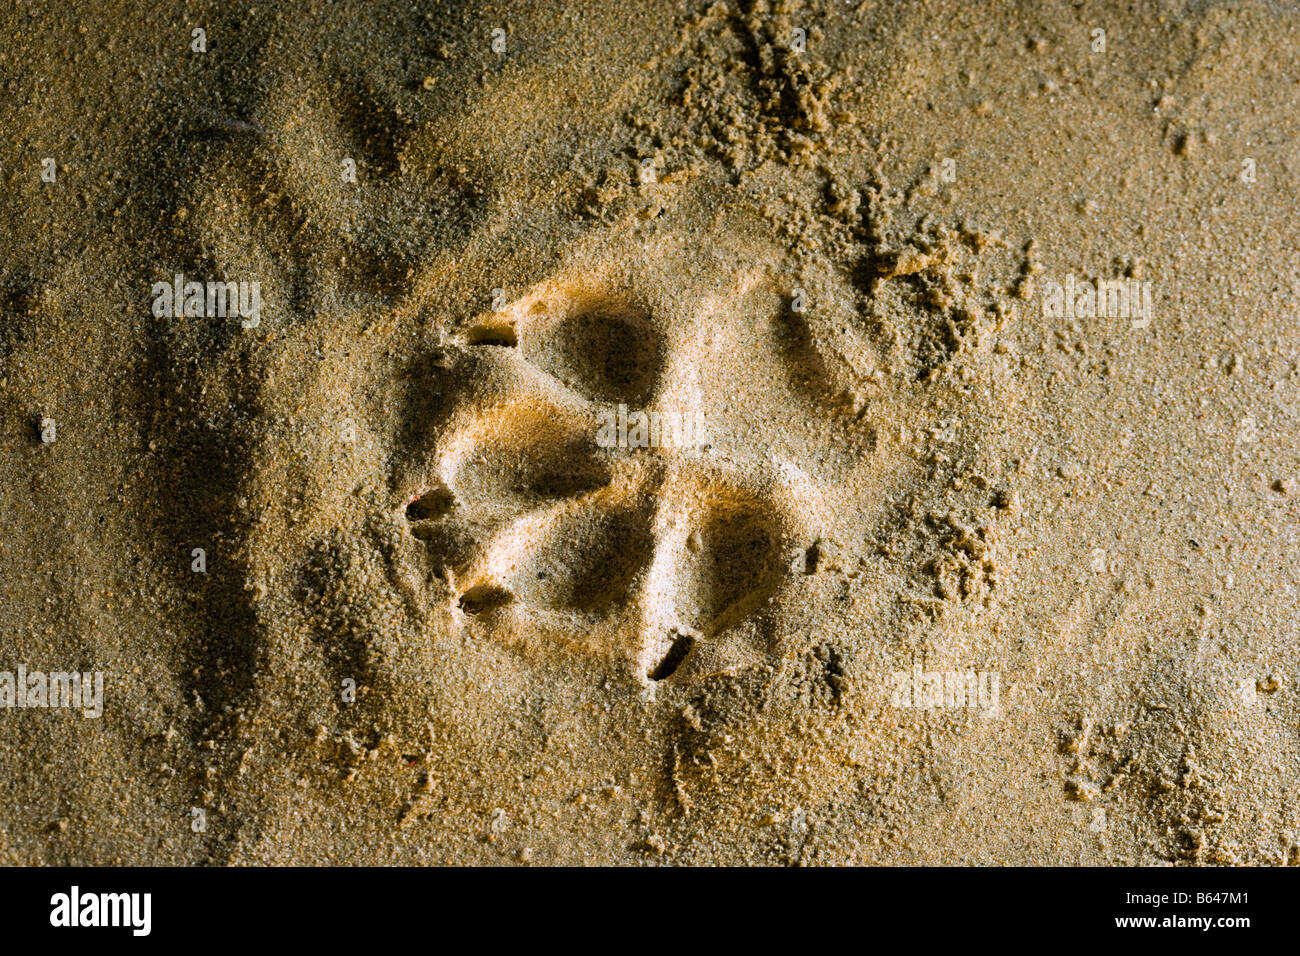 Finland, Kuhmo, Petola Visitor Center. Information about Finland's largest carnivores and preditors. Footprint of Stock Foto